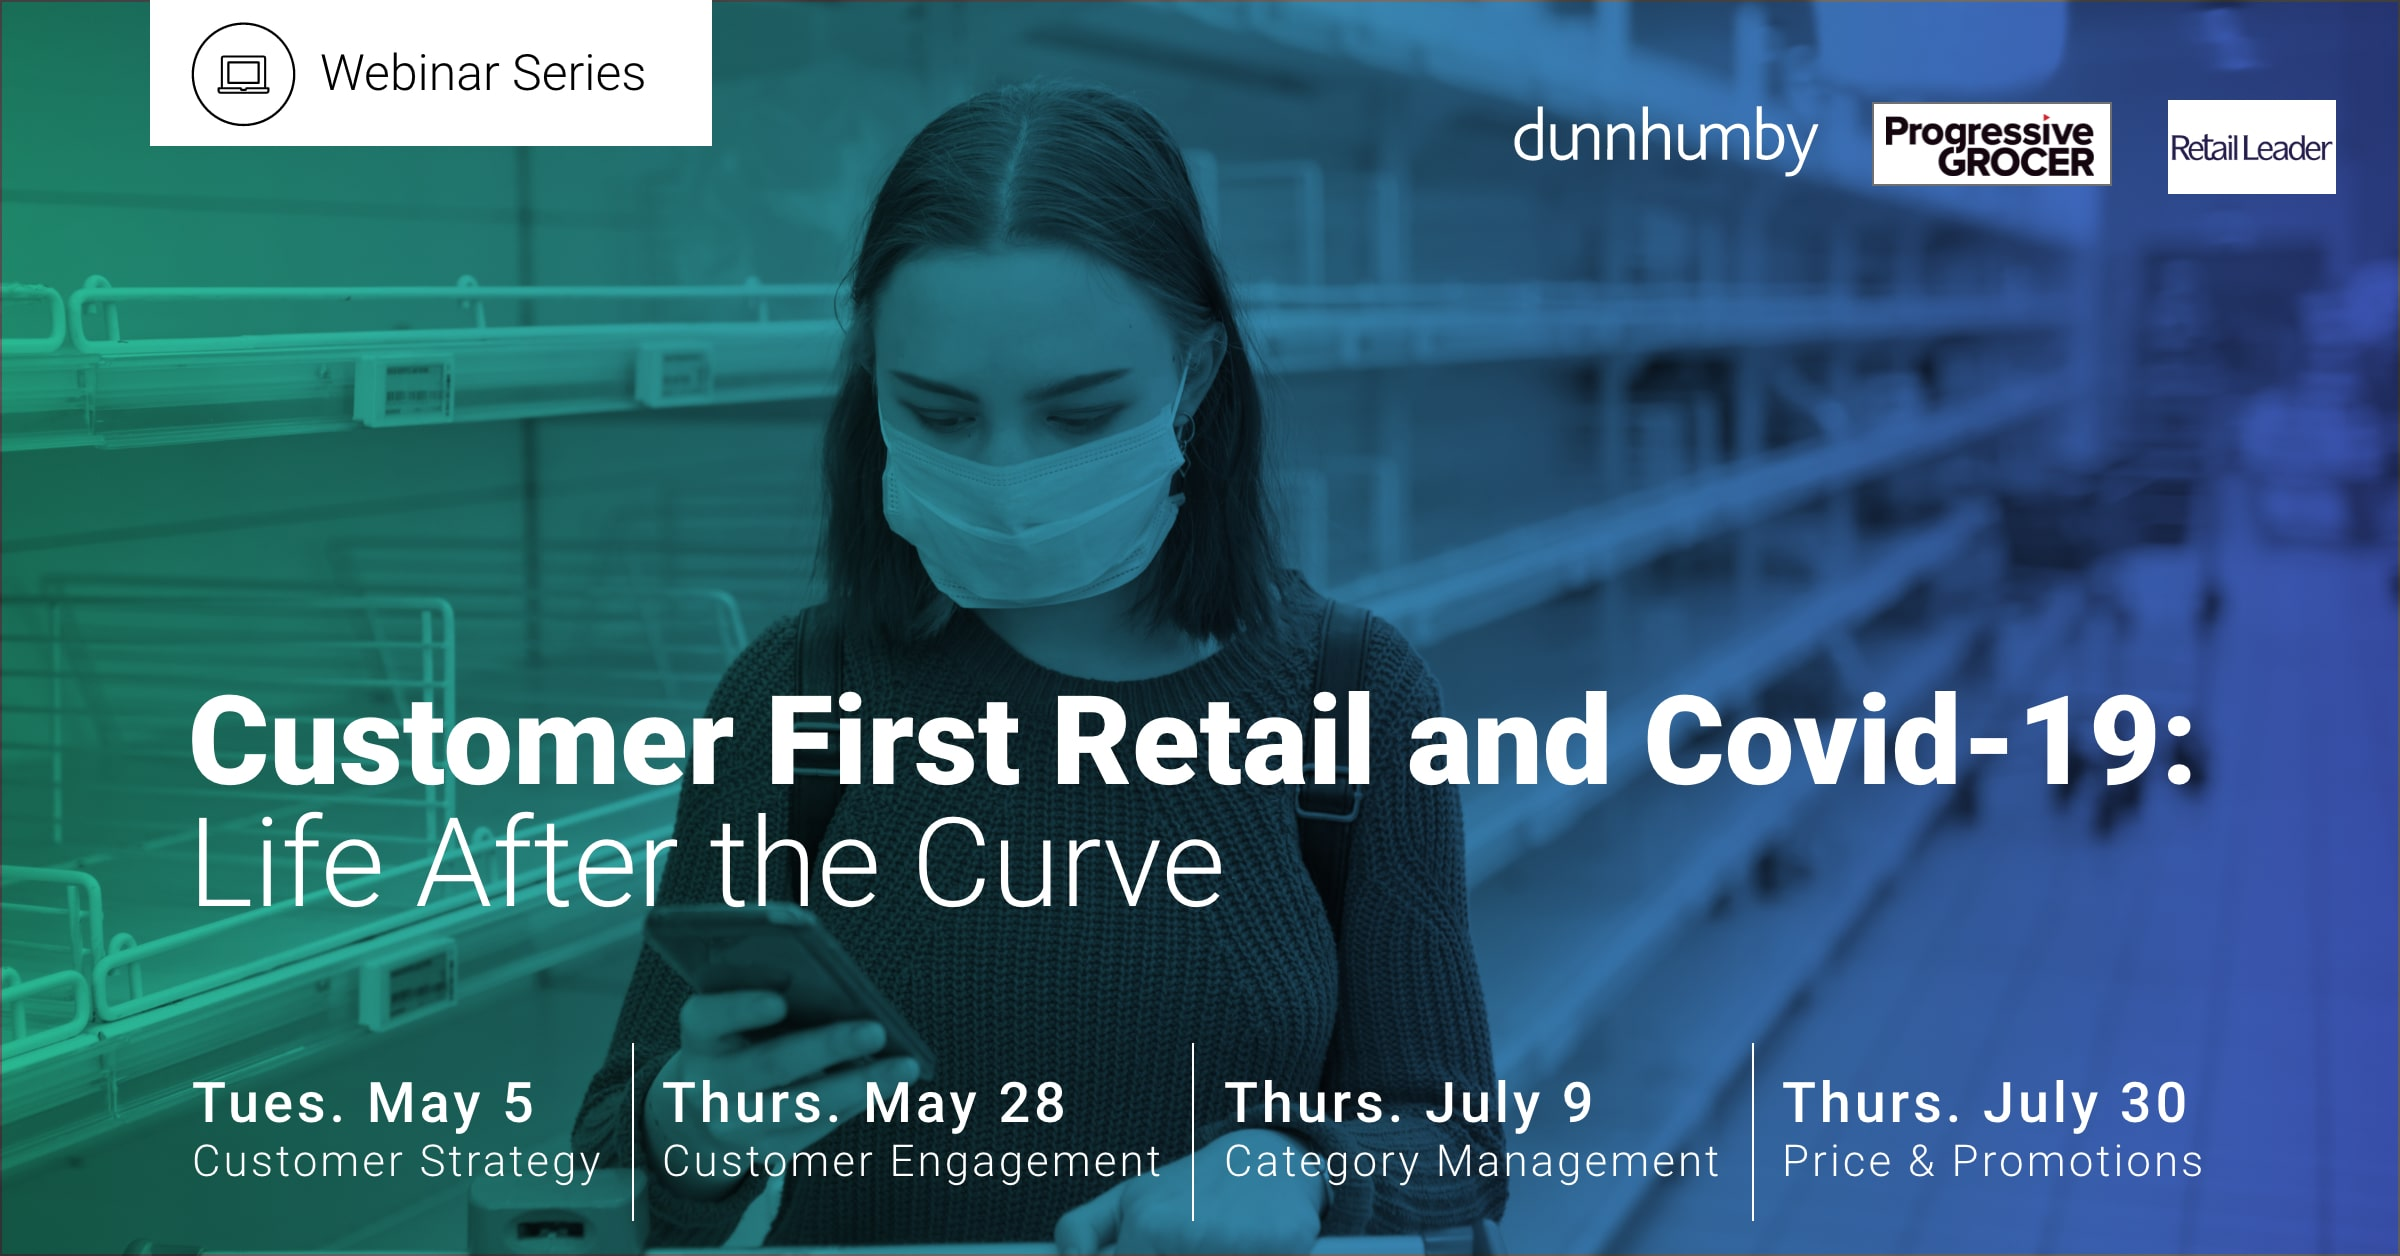 Webinar Series - Customer First Retail and COVID-19: Life After Curve - CoronaVirus